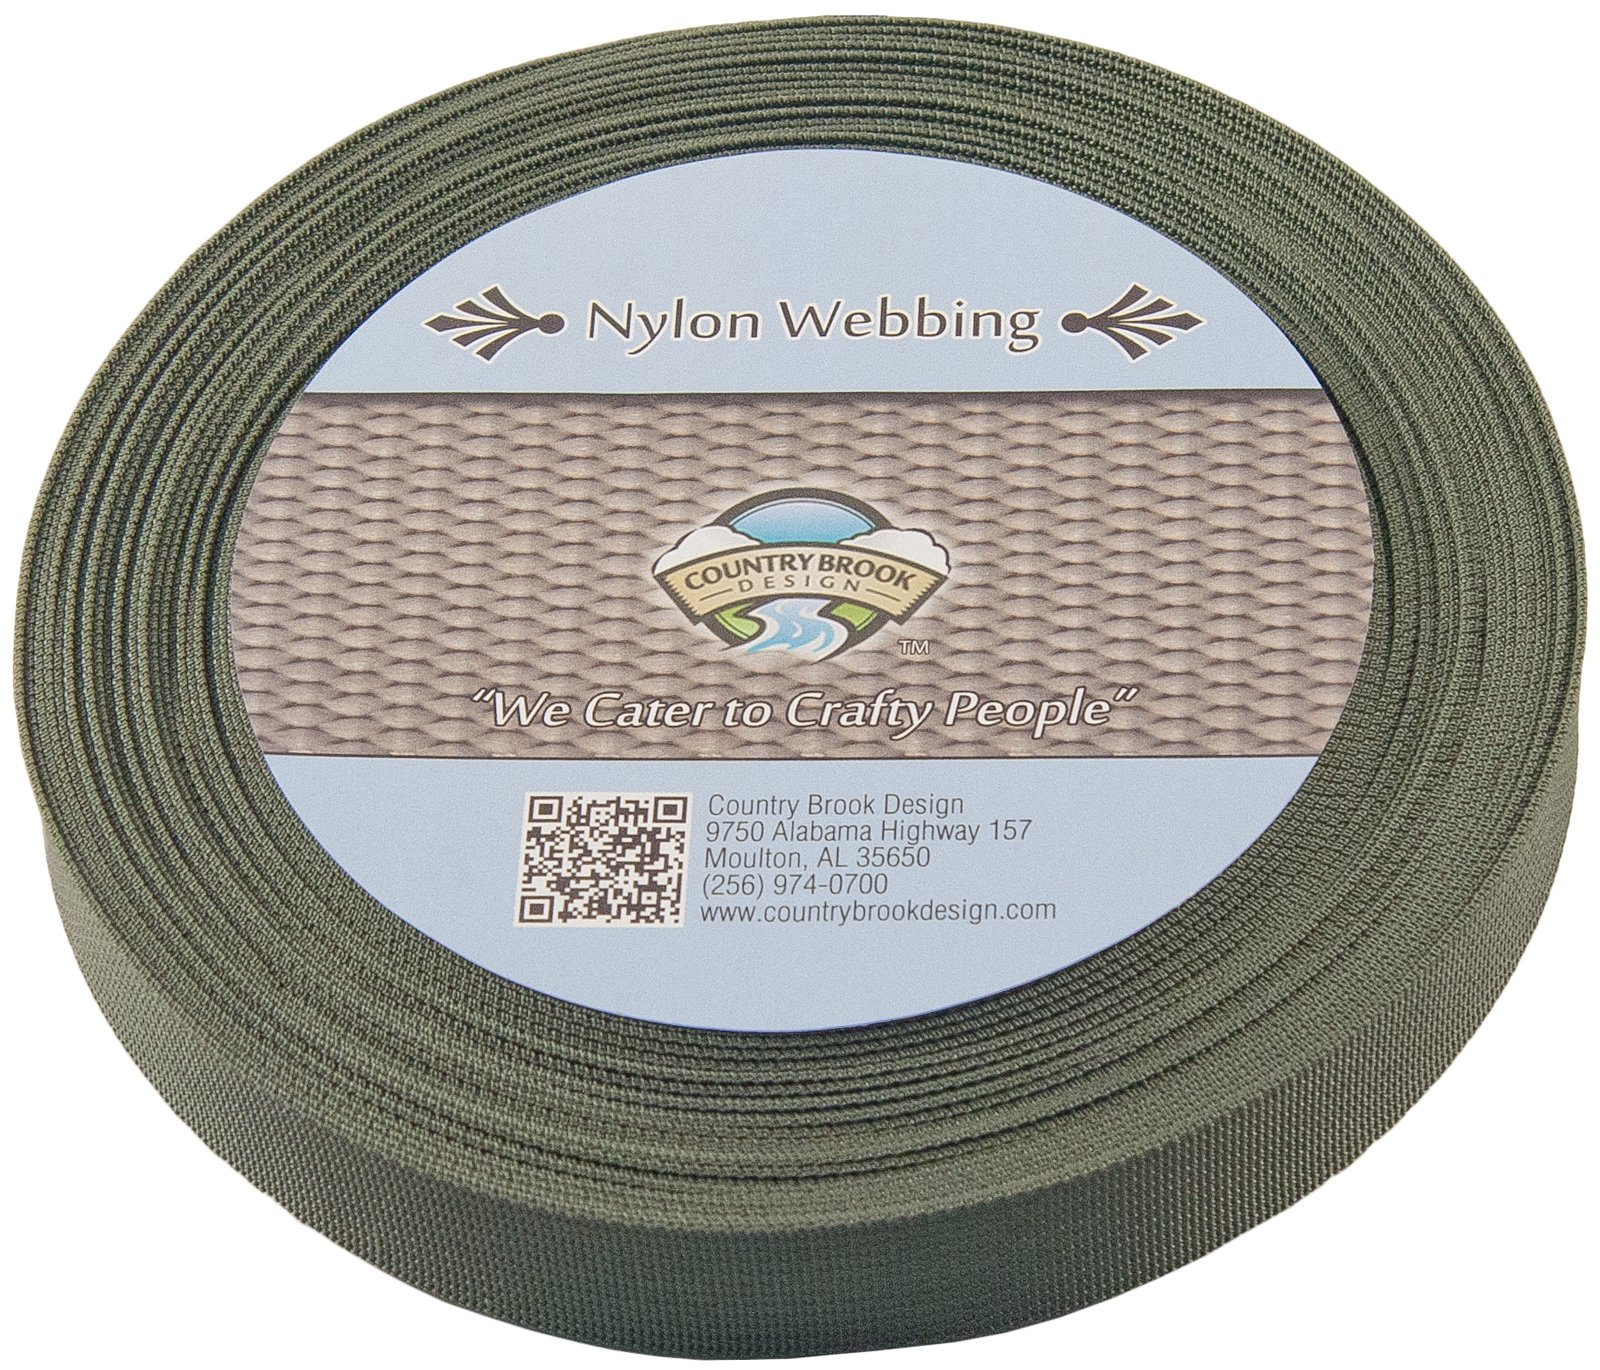 Country Brook Design 1 Inch Olive Drab Green Lite Weight Nylon Webbing, 25 Yards